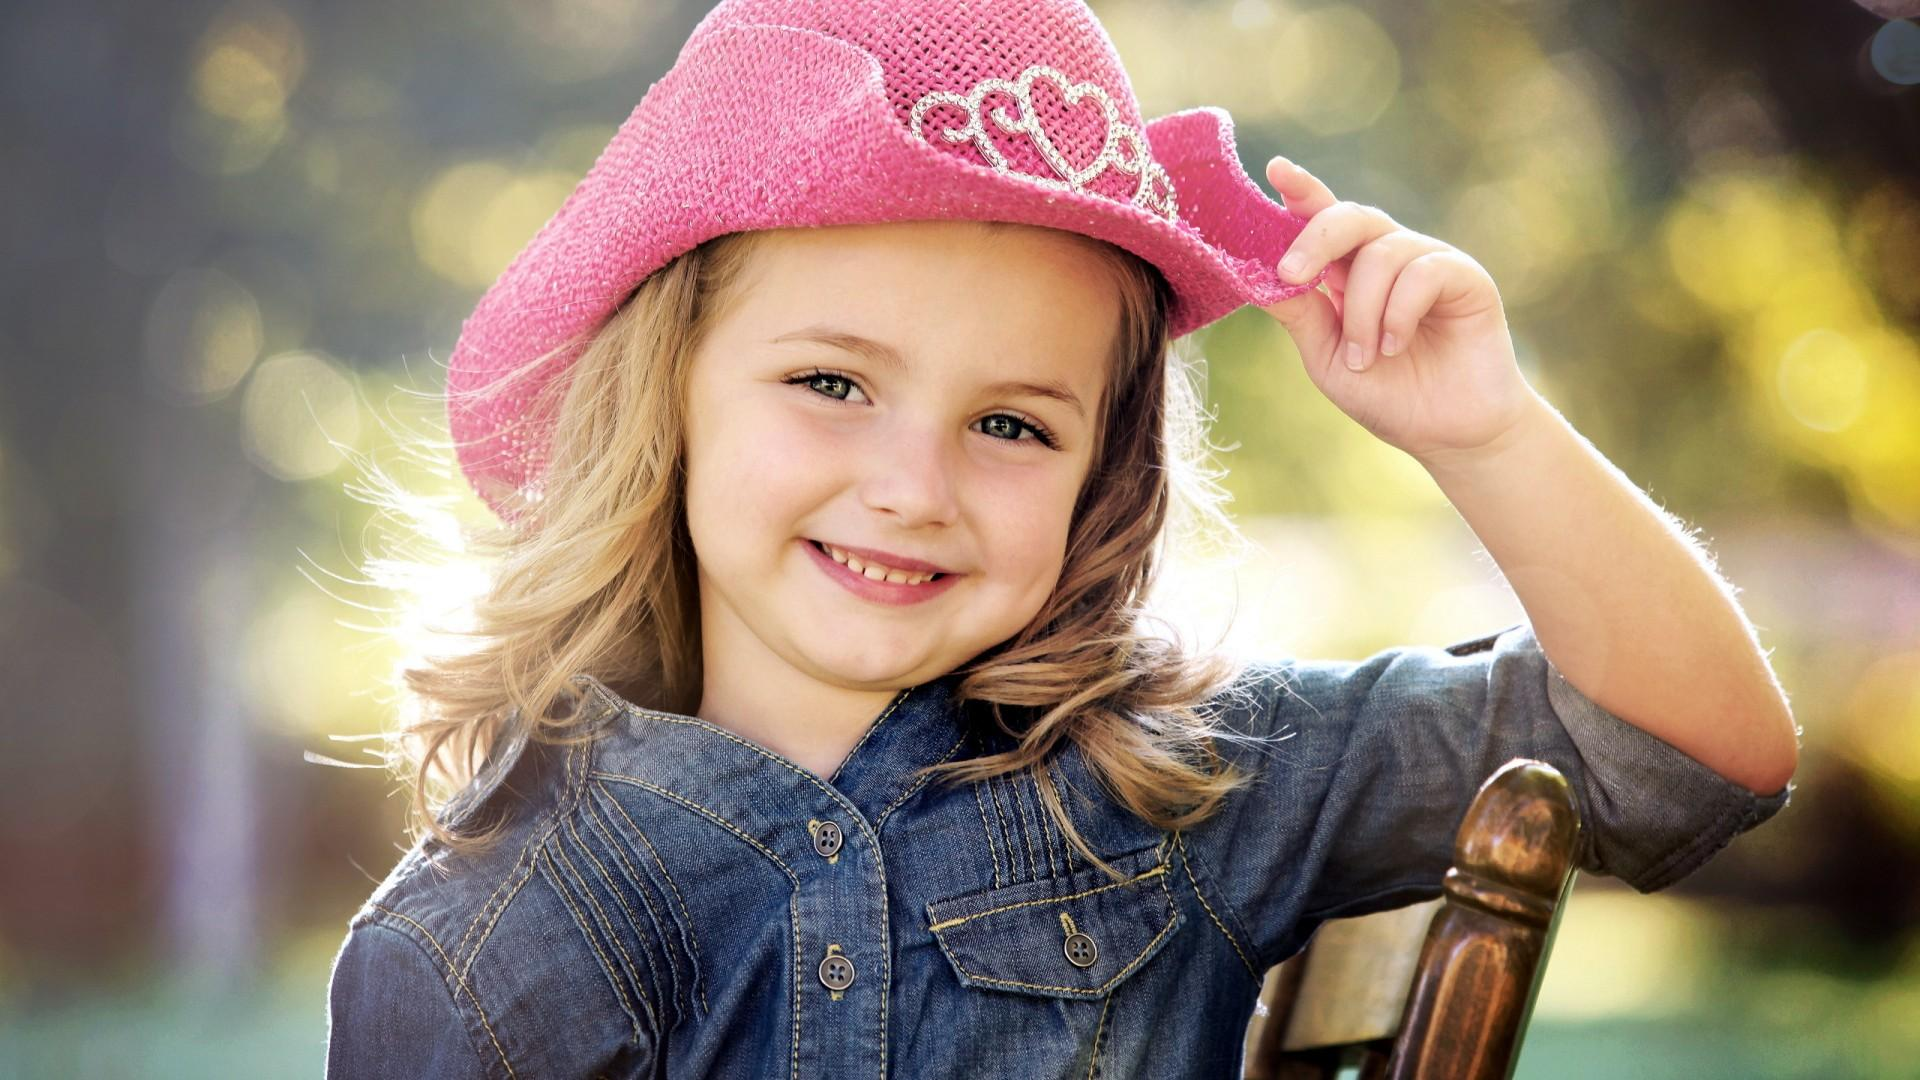 Baby-Girl-With-Hat-HD-HD-wallpaper-wpc5802462